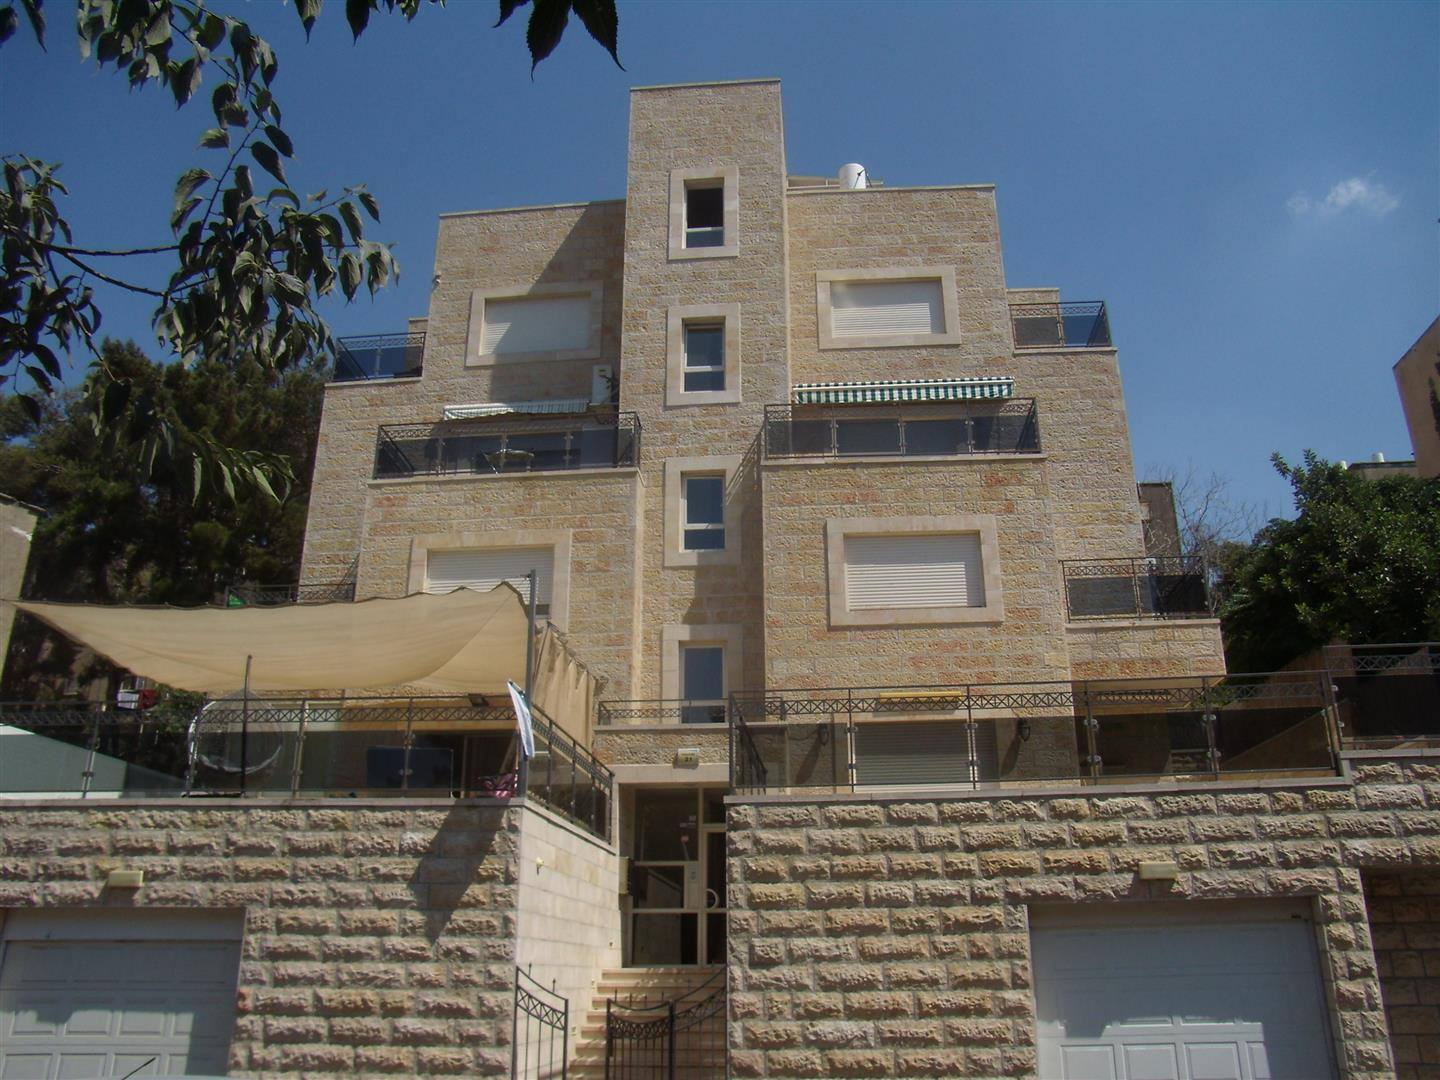 Shimoni - at home in jerusalem (11)